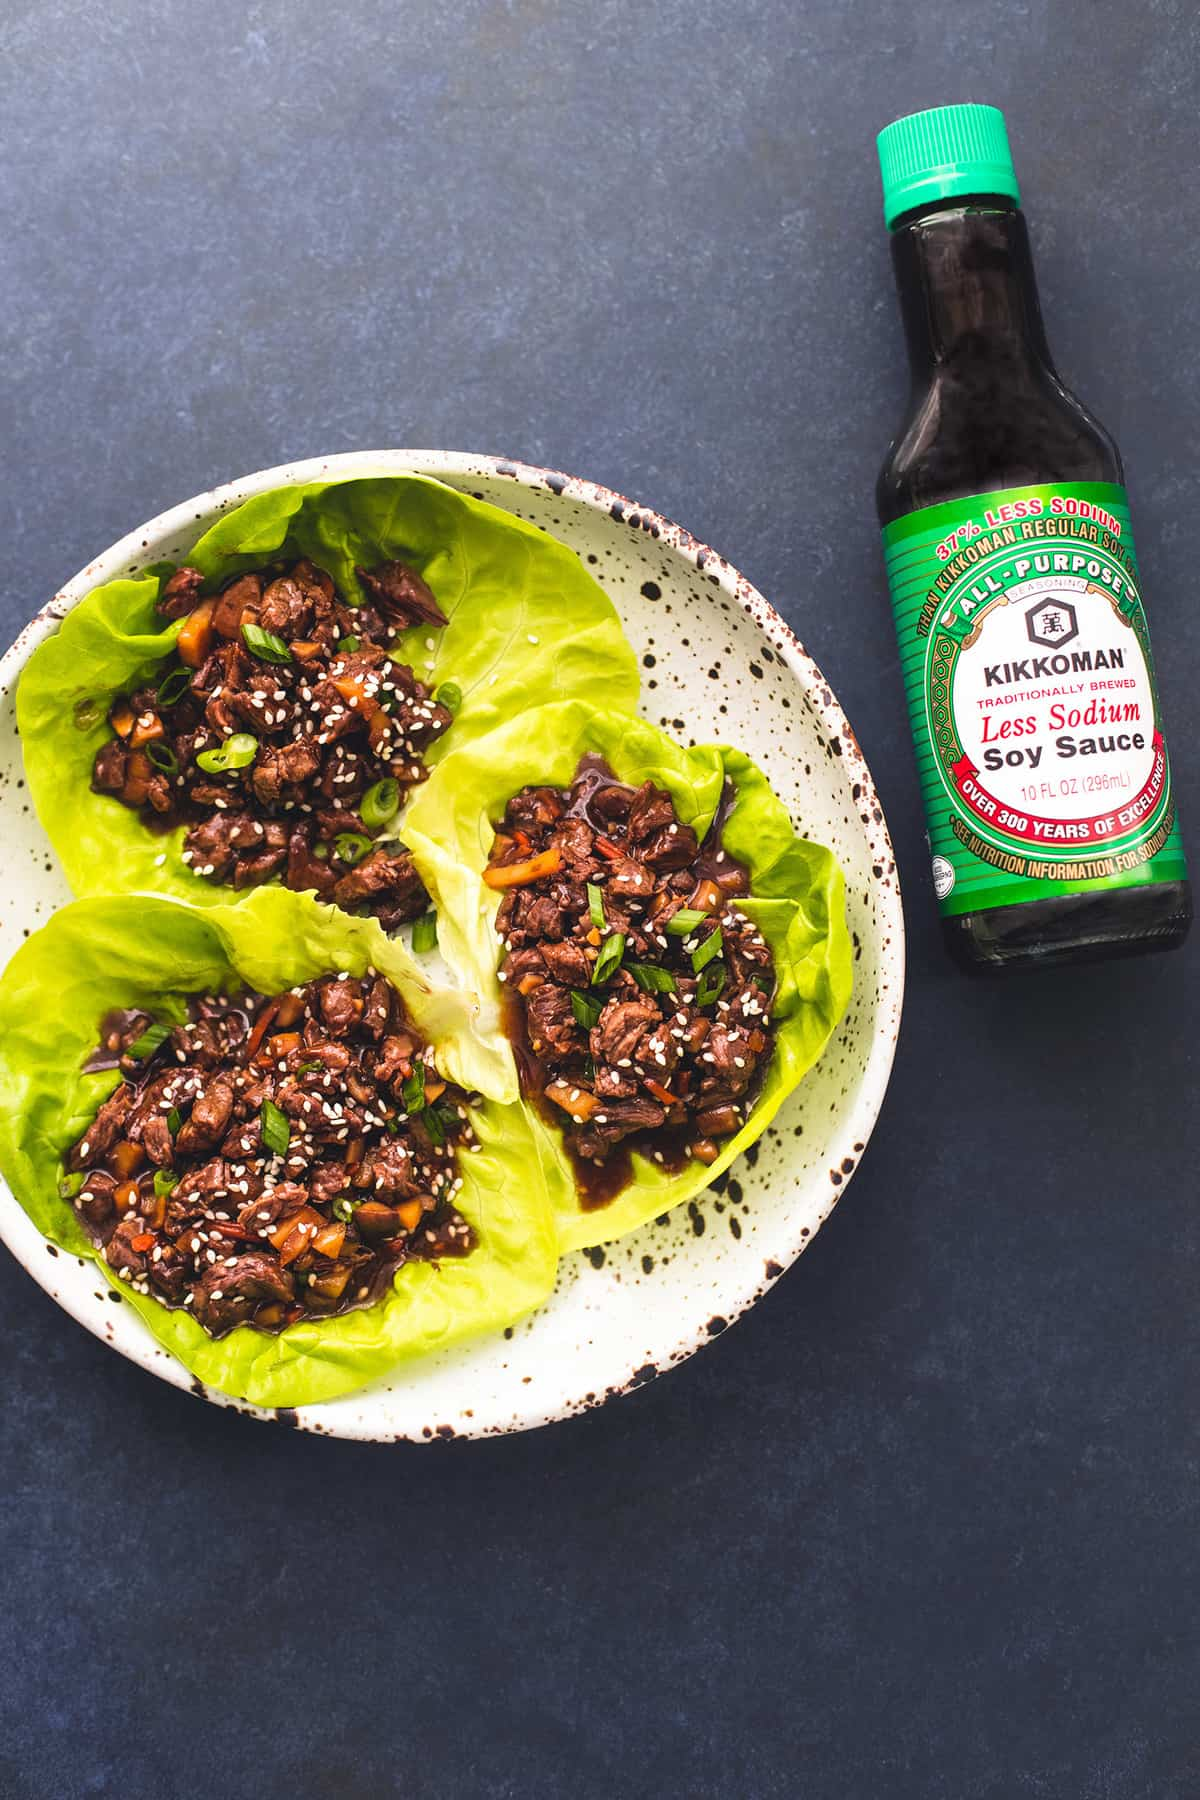 top view of honey beef lettuce wraps on a plate with a bottle of Kikkoman soy sauce on the side.